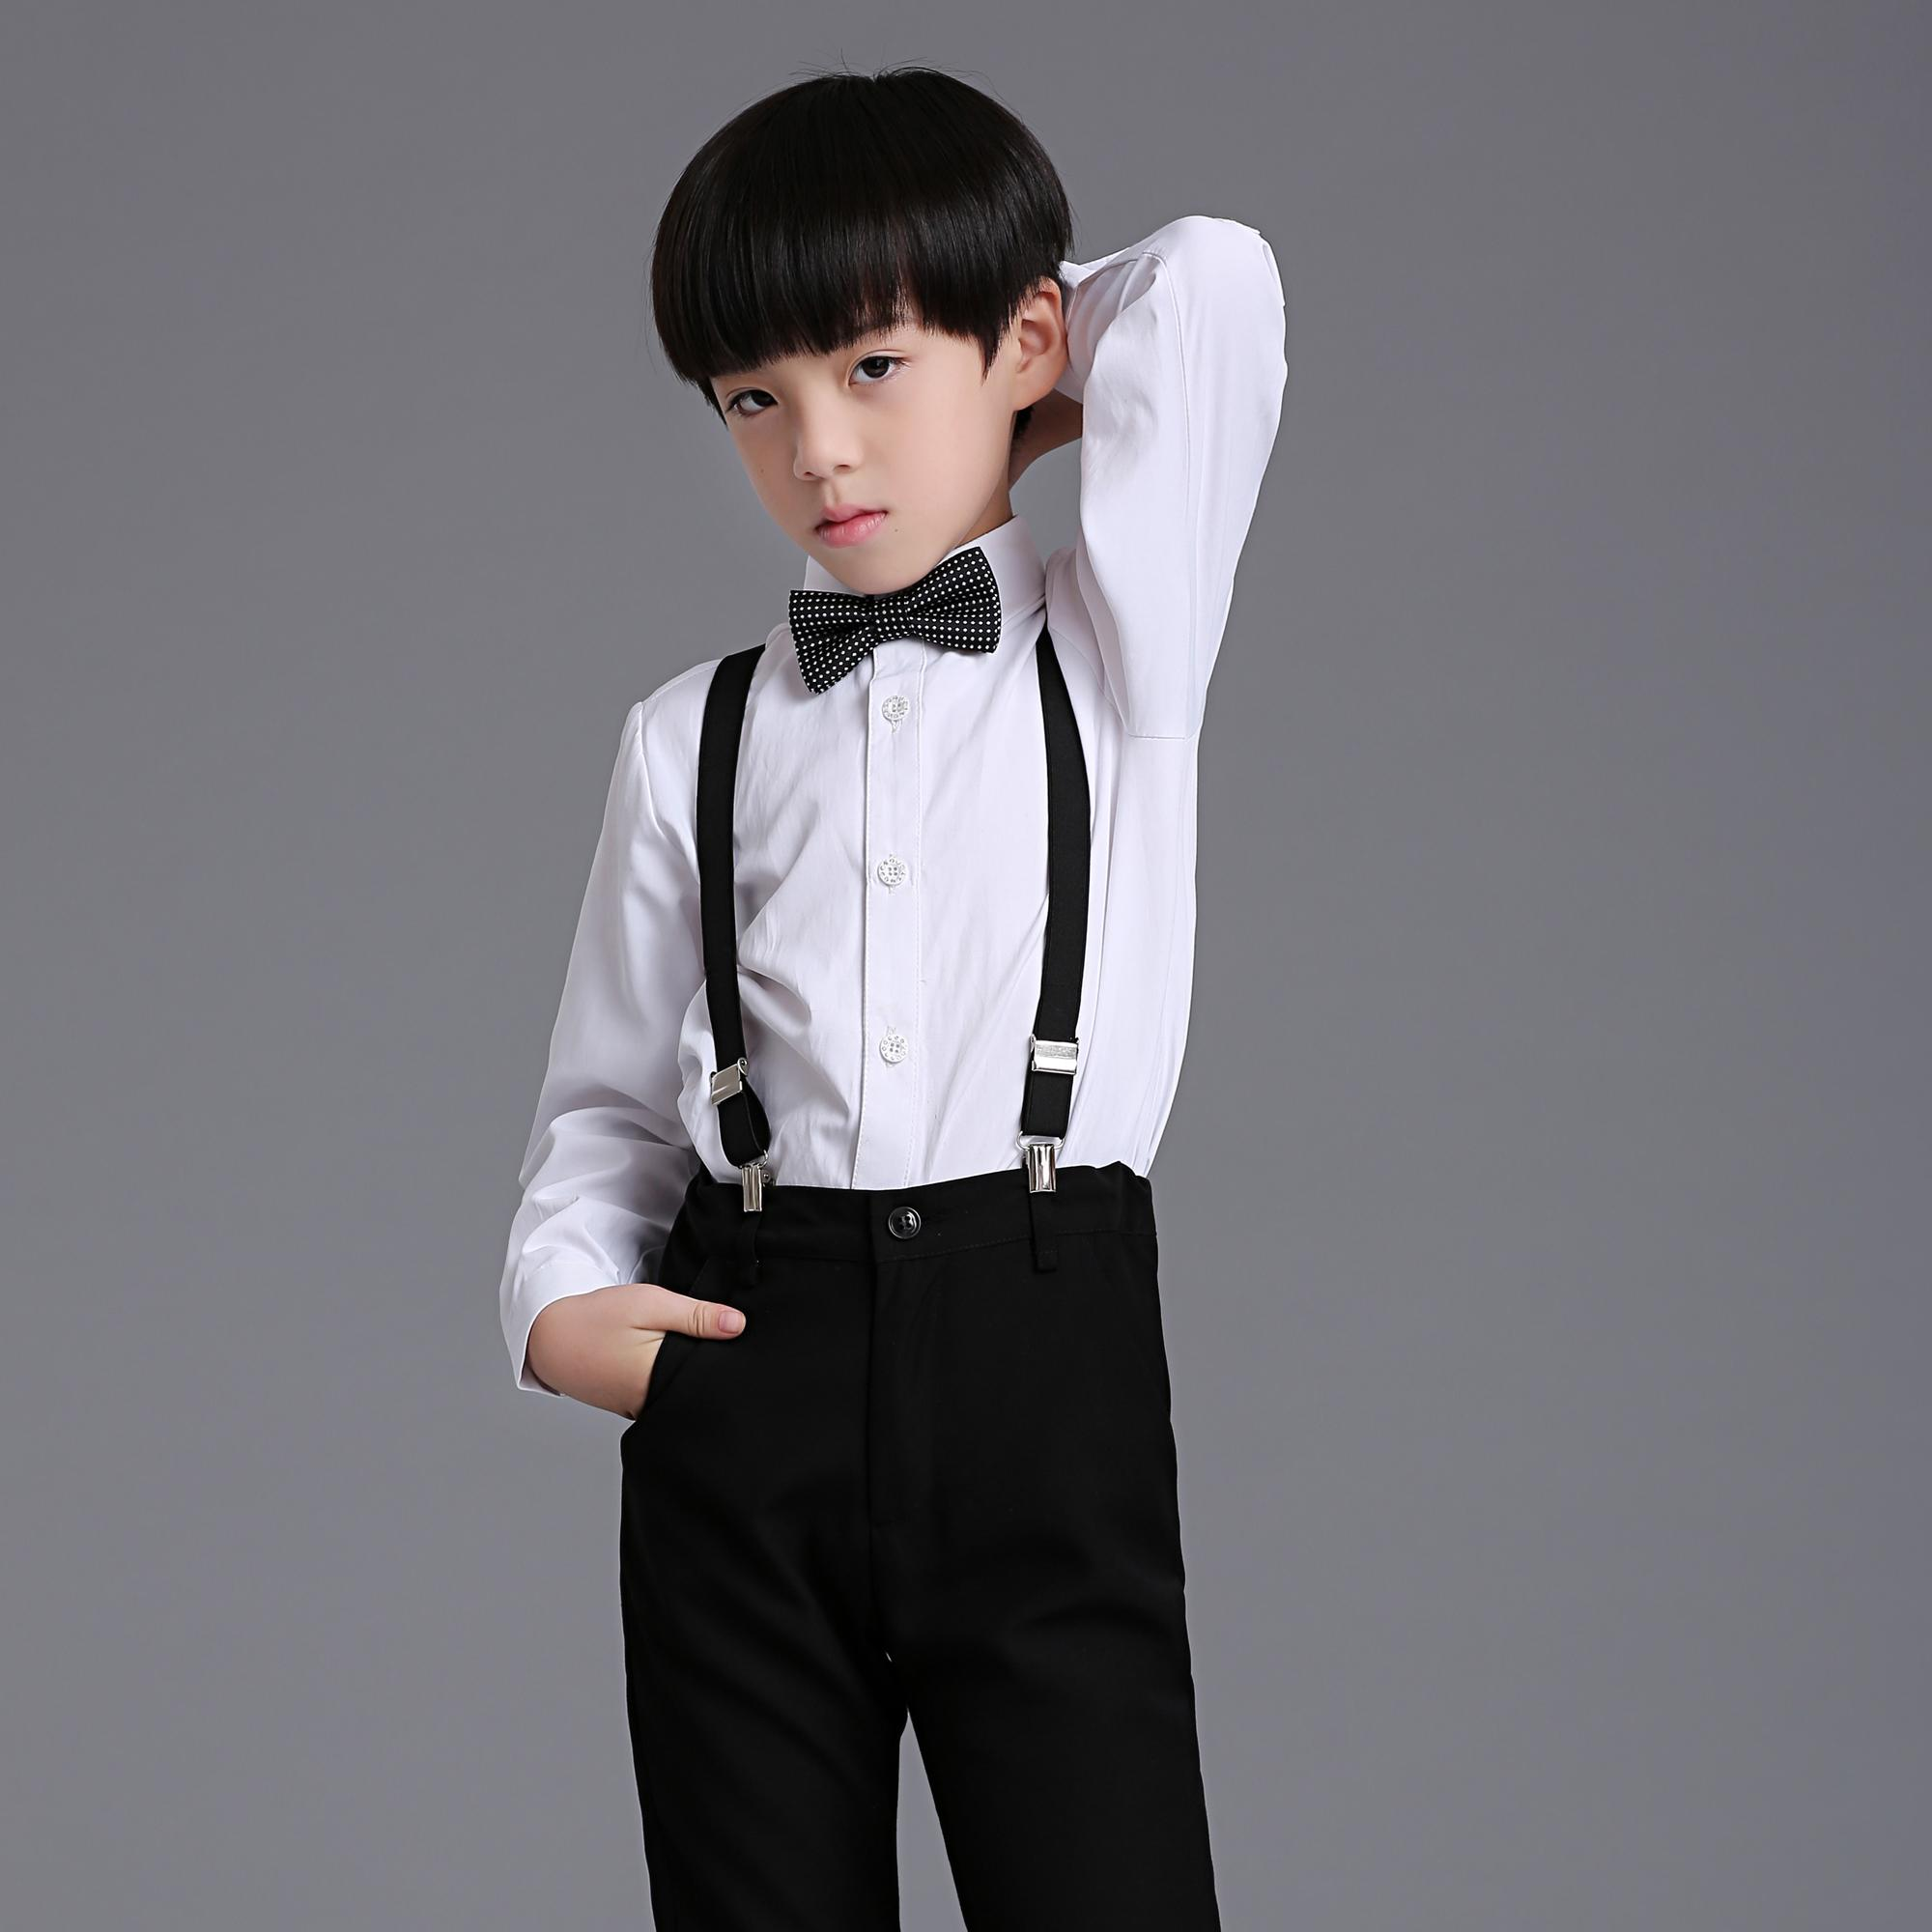 High End New Children Boy Dress Rompers Suit Dress School Prom ...